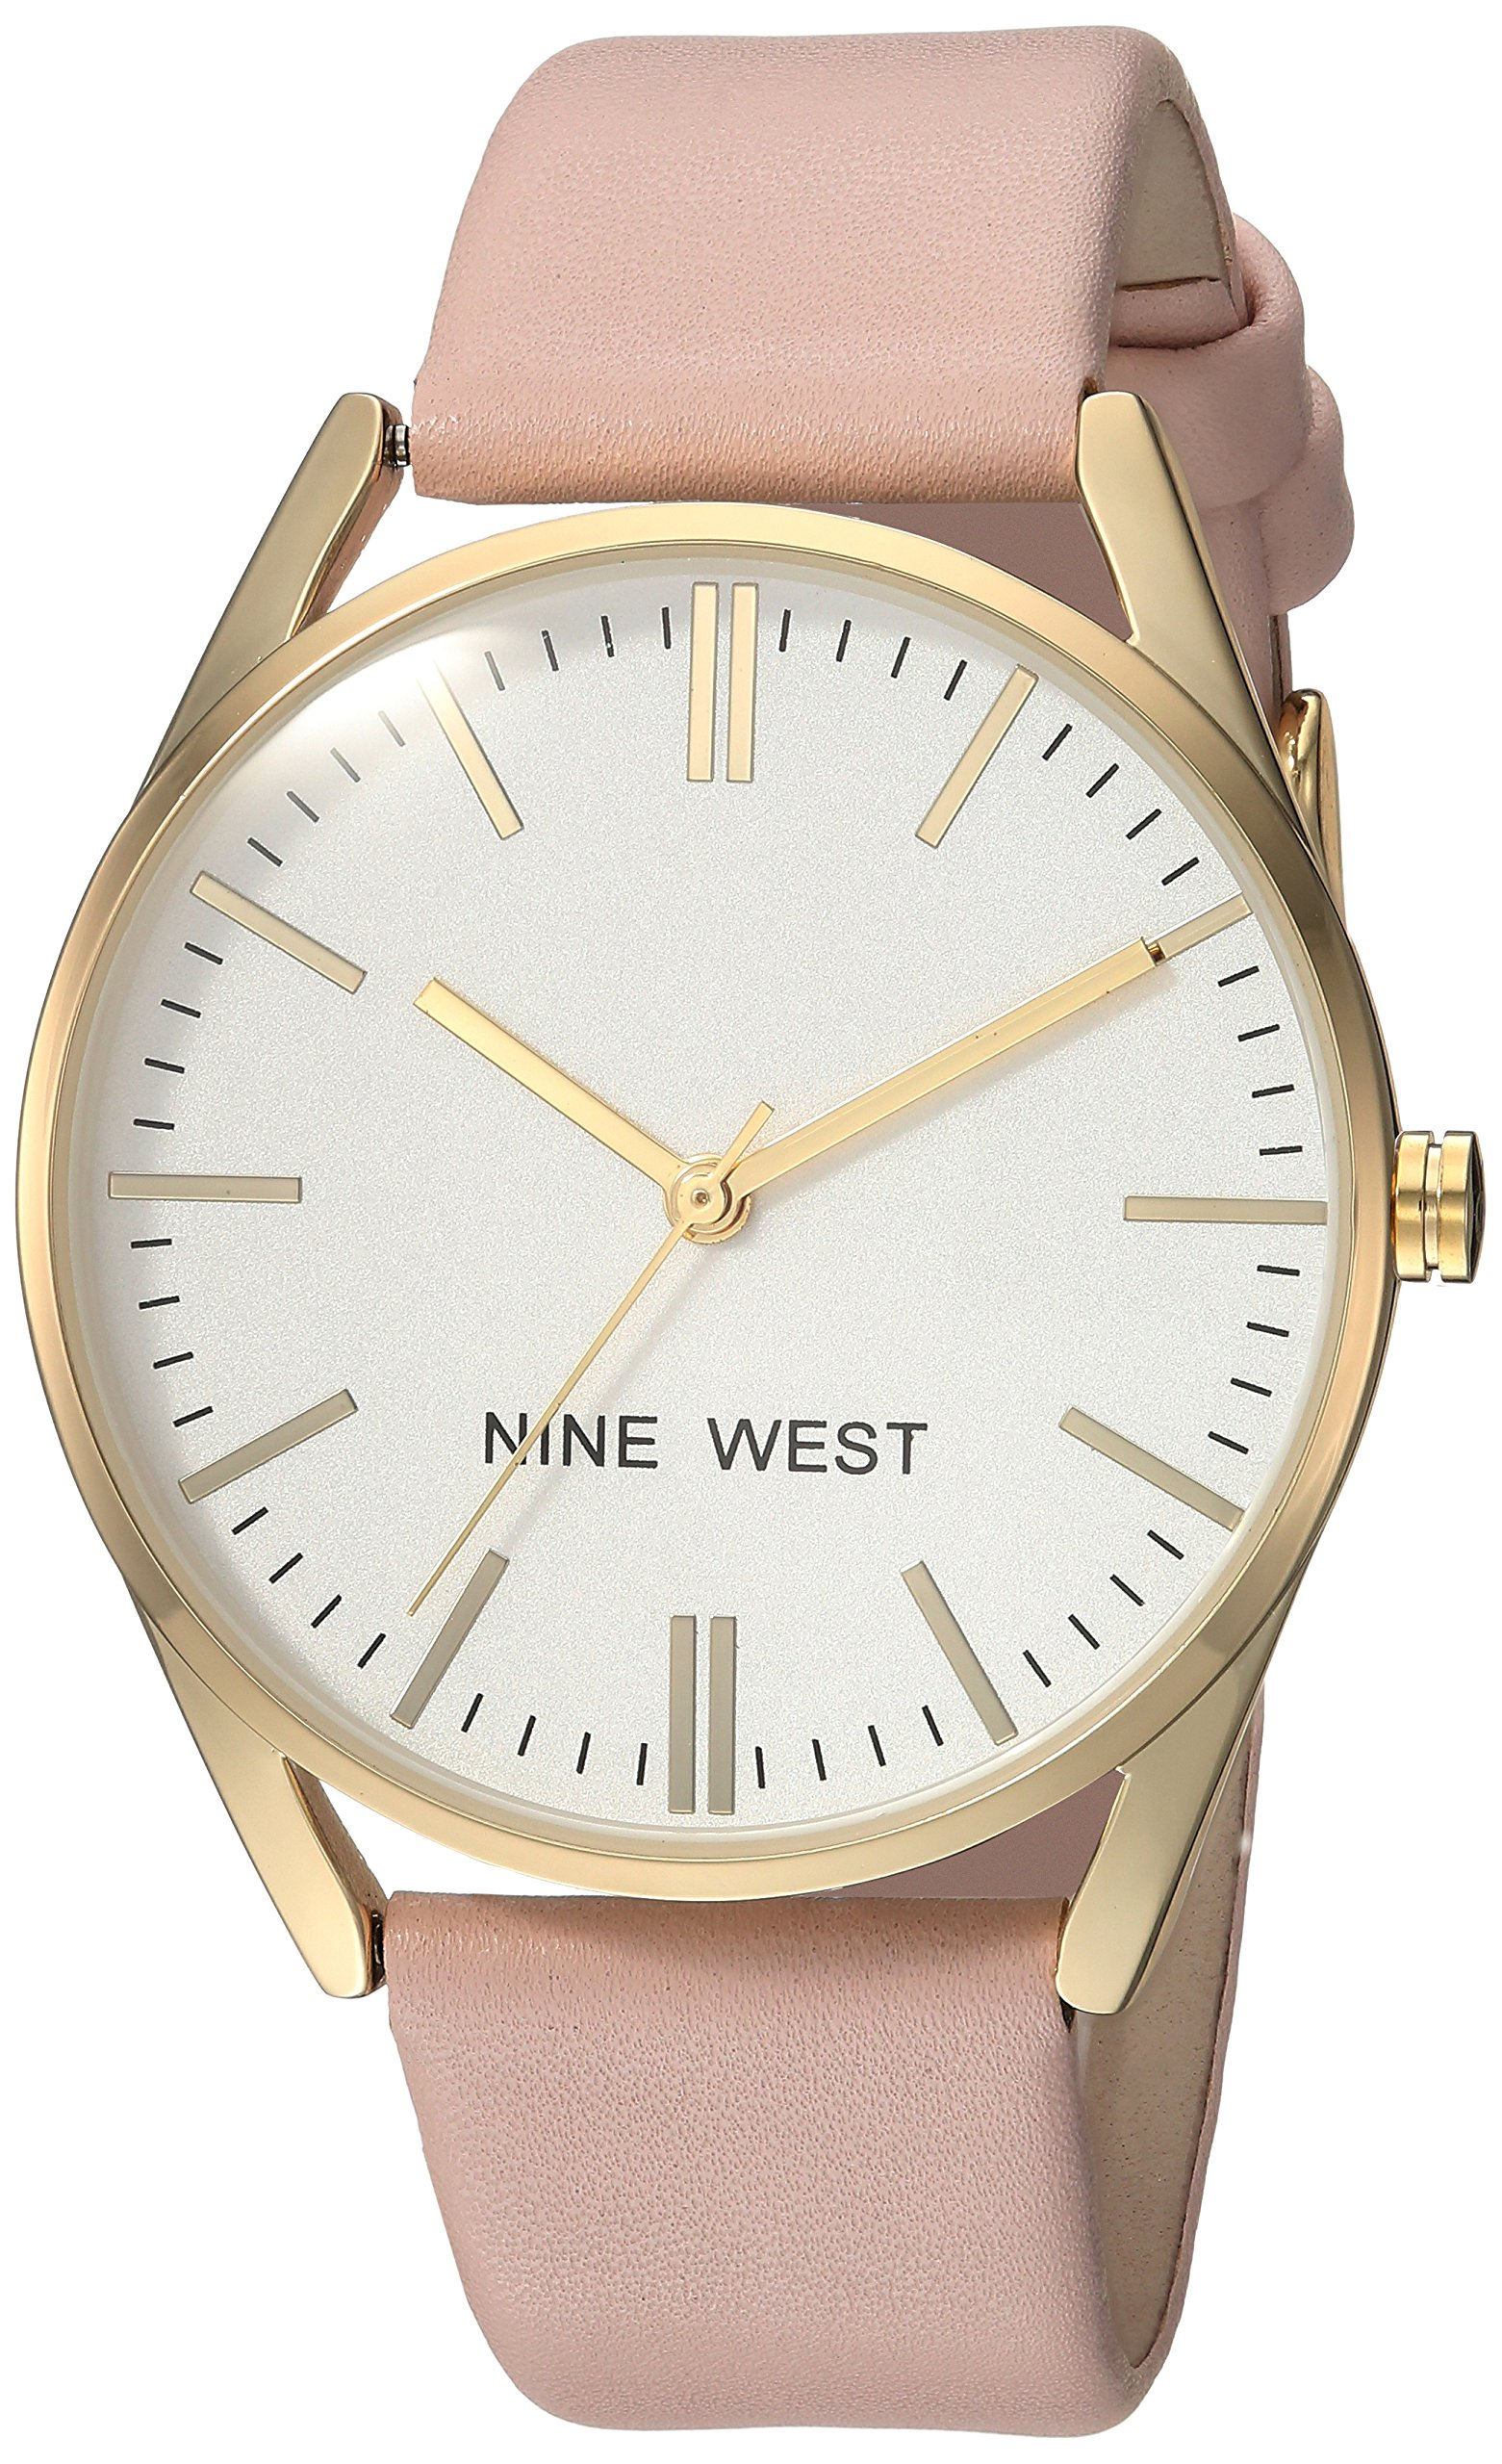 Nine West Women's NW/1994WTPK Gold-Tone and Pastel Pink Strap Watch by Nine West